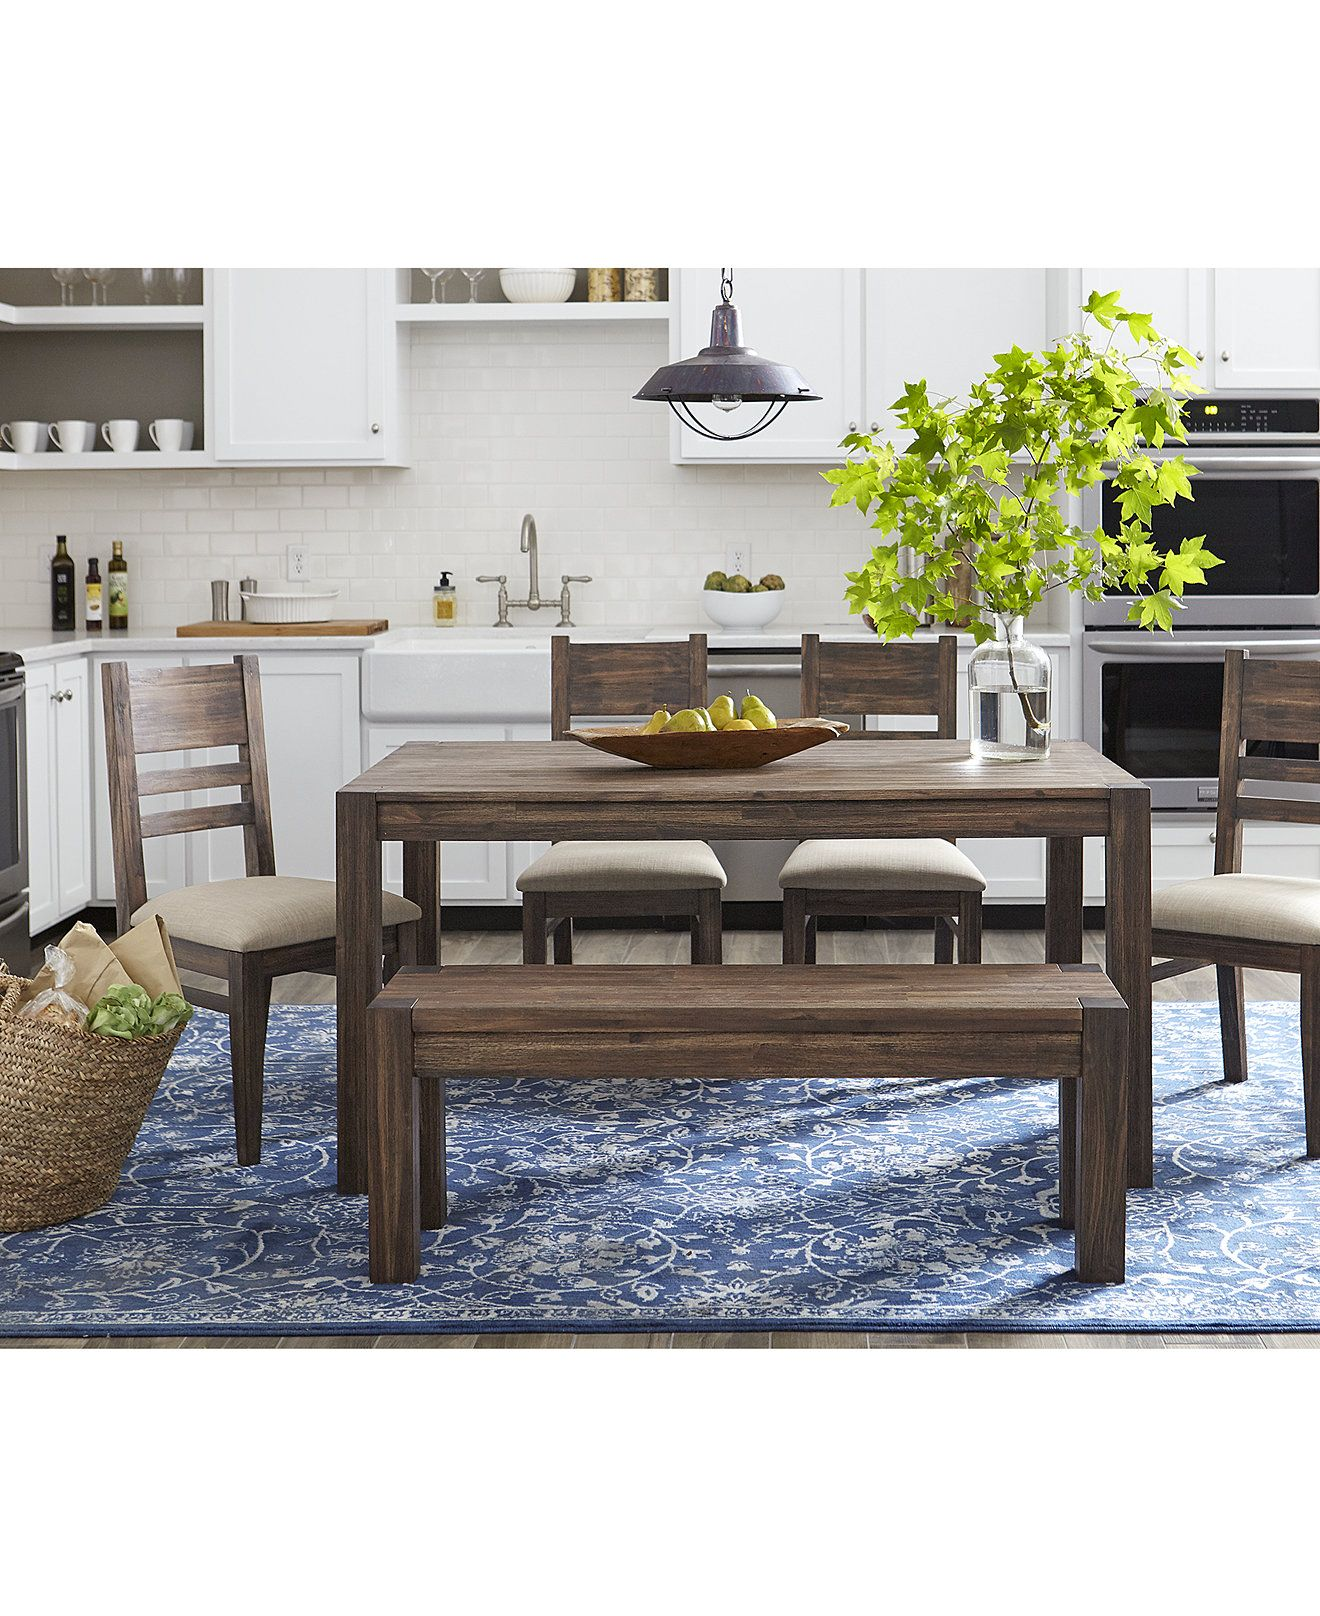 Avondale Kitchen Furniture Collection Only At Macy's  Dining Fascinating Macys Dining Room Chairs Inspiration